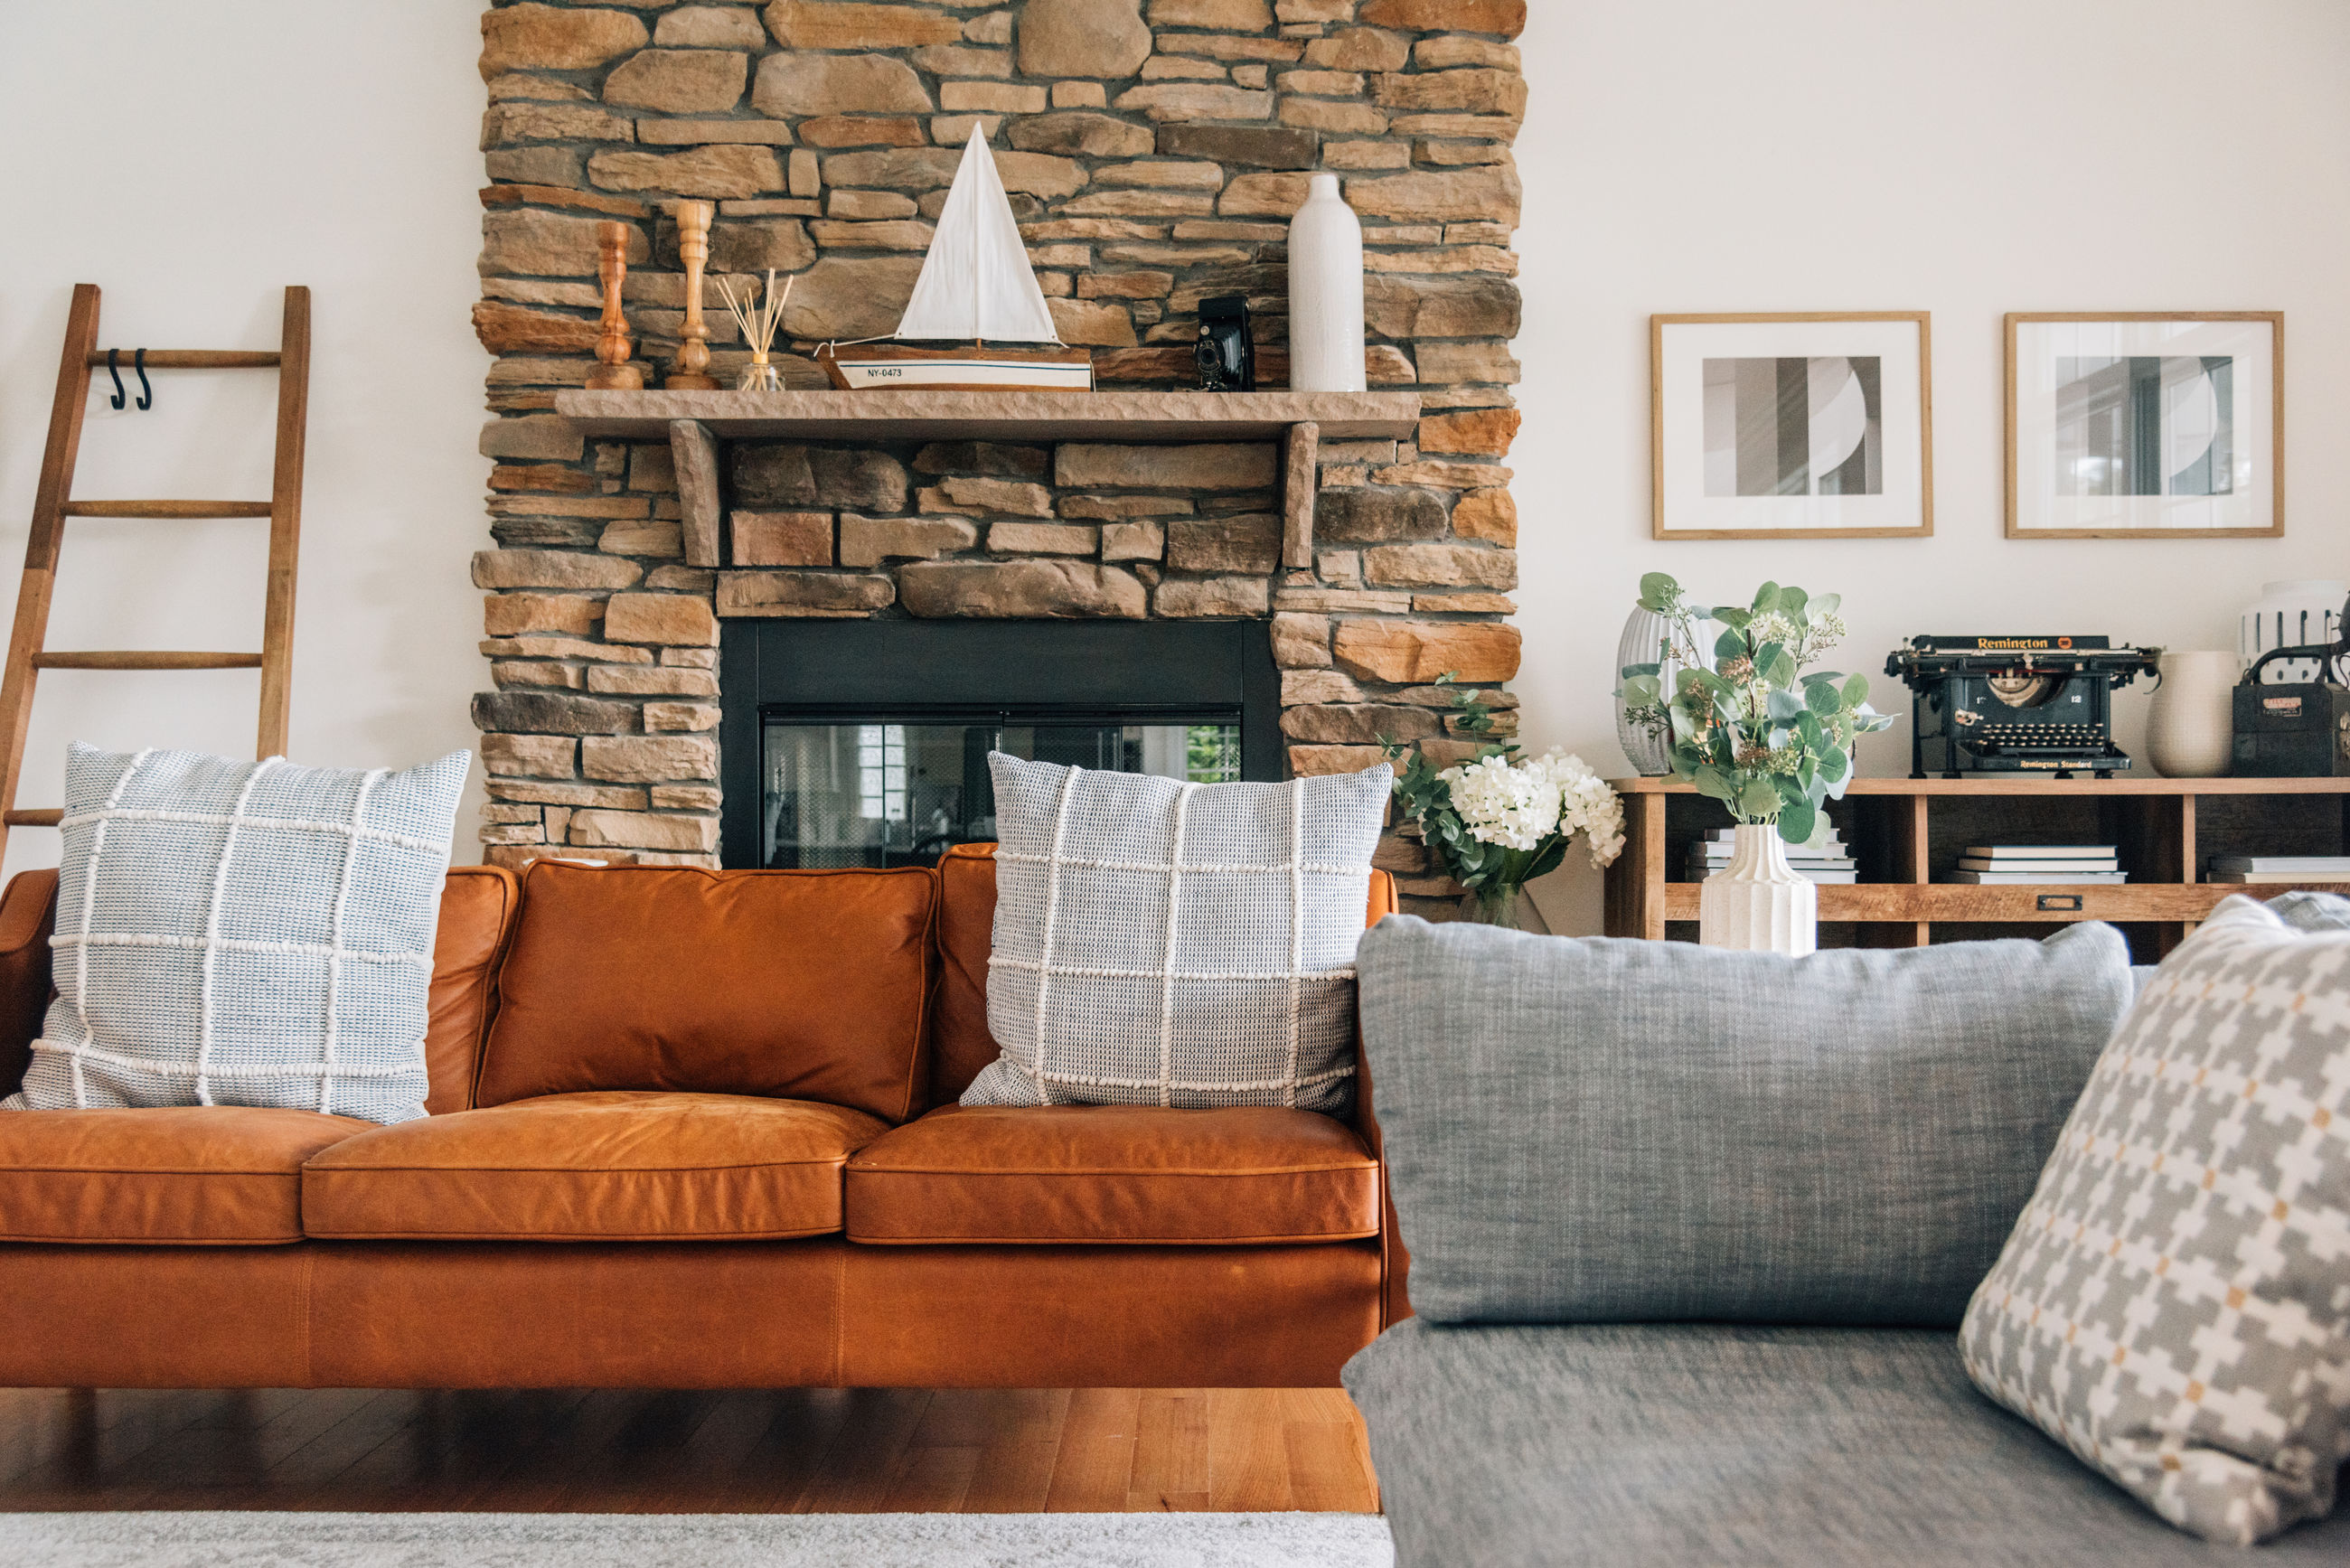 furniture, sofa, pillow, living room, home interior, stuffed, no people, cushion, domestic room, indoors, table, built structure, home, architecture, day, wood - material, absence, comfortable, building, wall - building feature